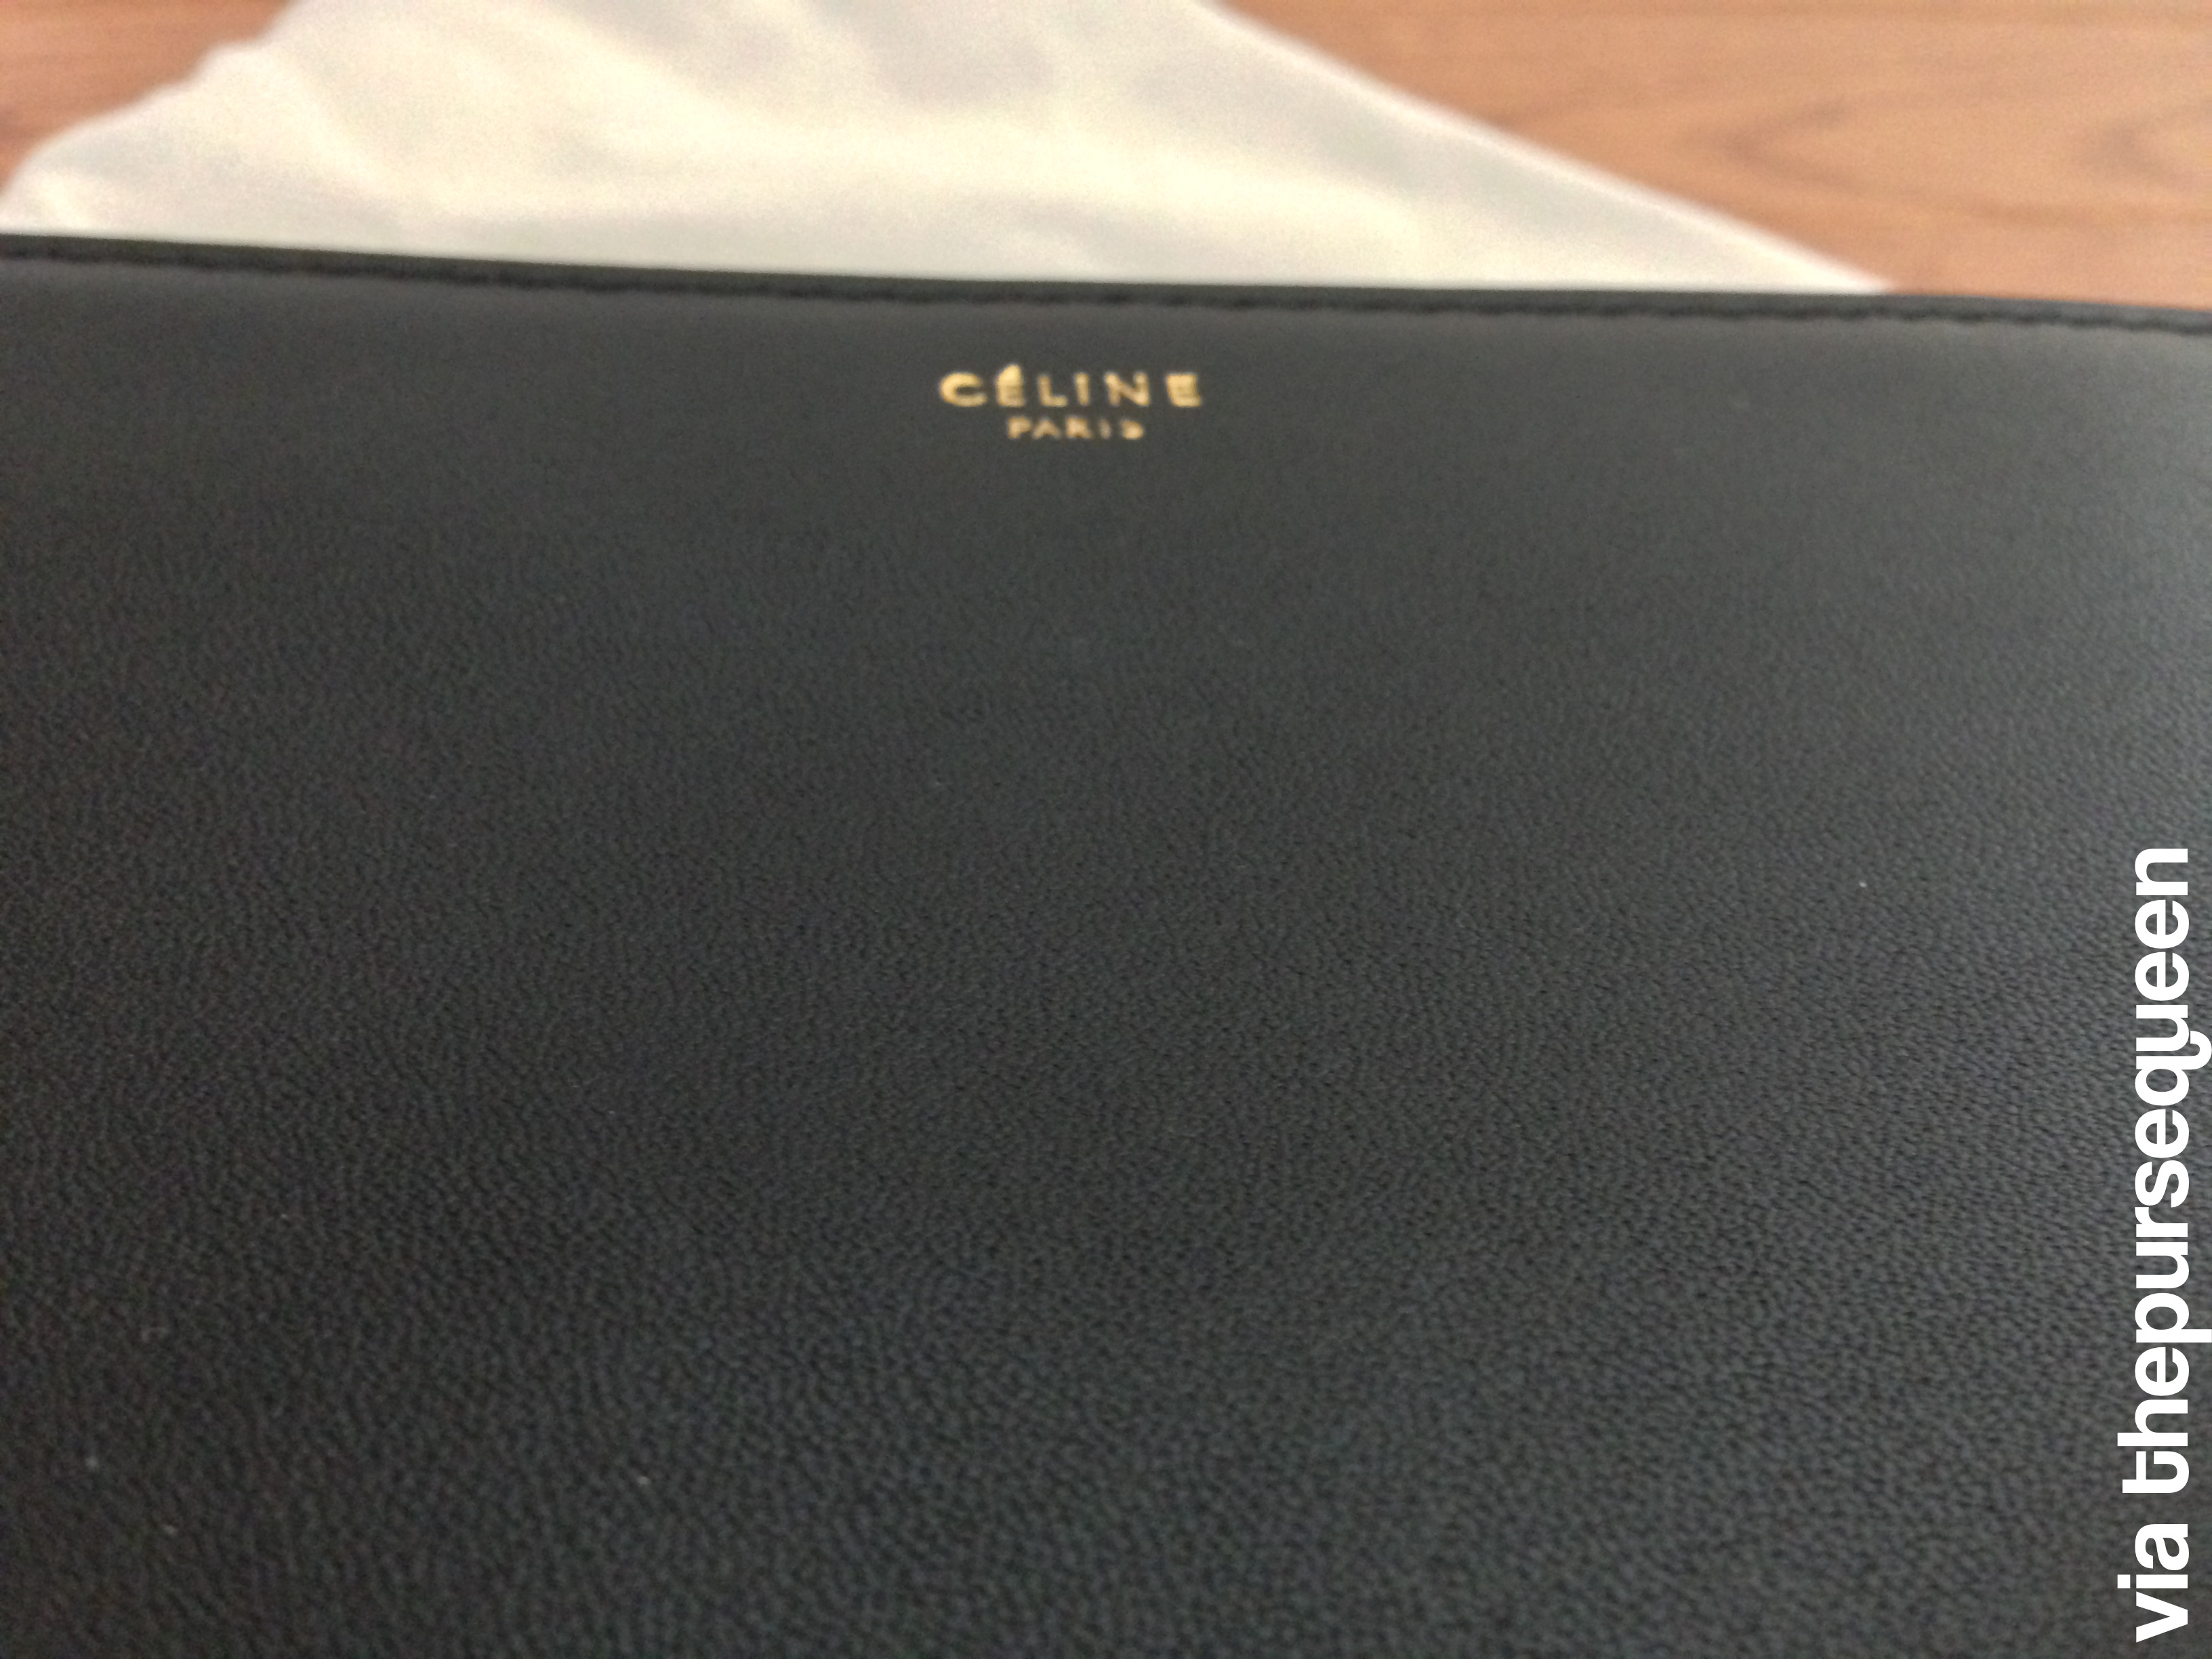 Celine \u2013 Authentic \u0026amp; Replica Bags \u0026amp; Replica Handbags Reviews by ...